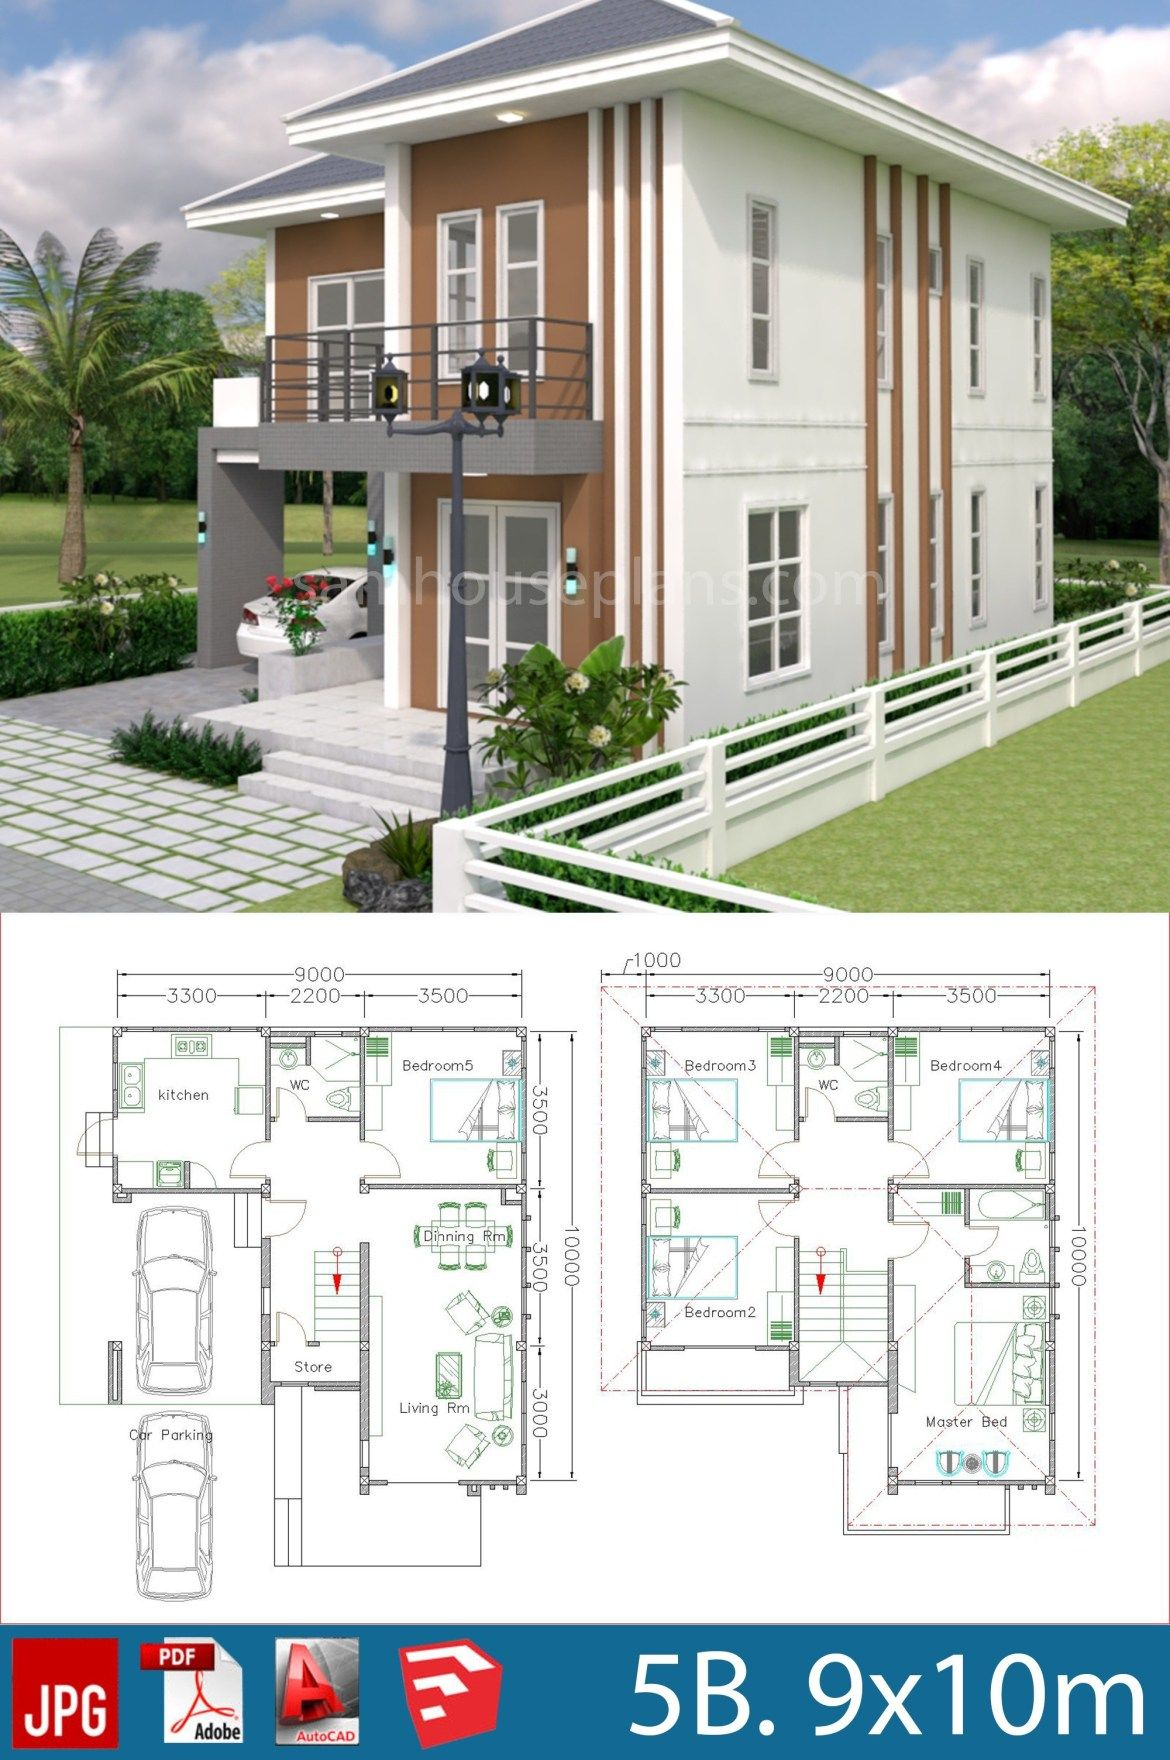 House Plans Design 9x10m With 5 Bedrooms Samphoas Plansearch Building Design Plan Home Design Plans House Architecture Design